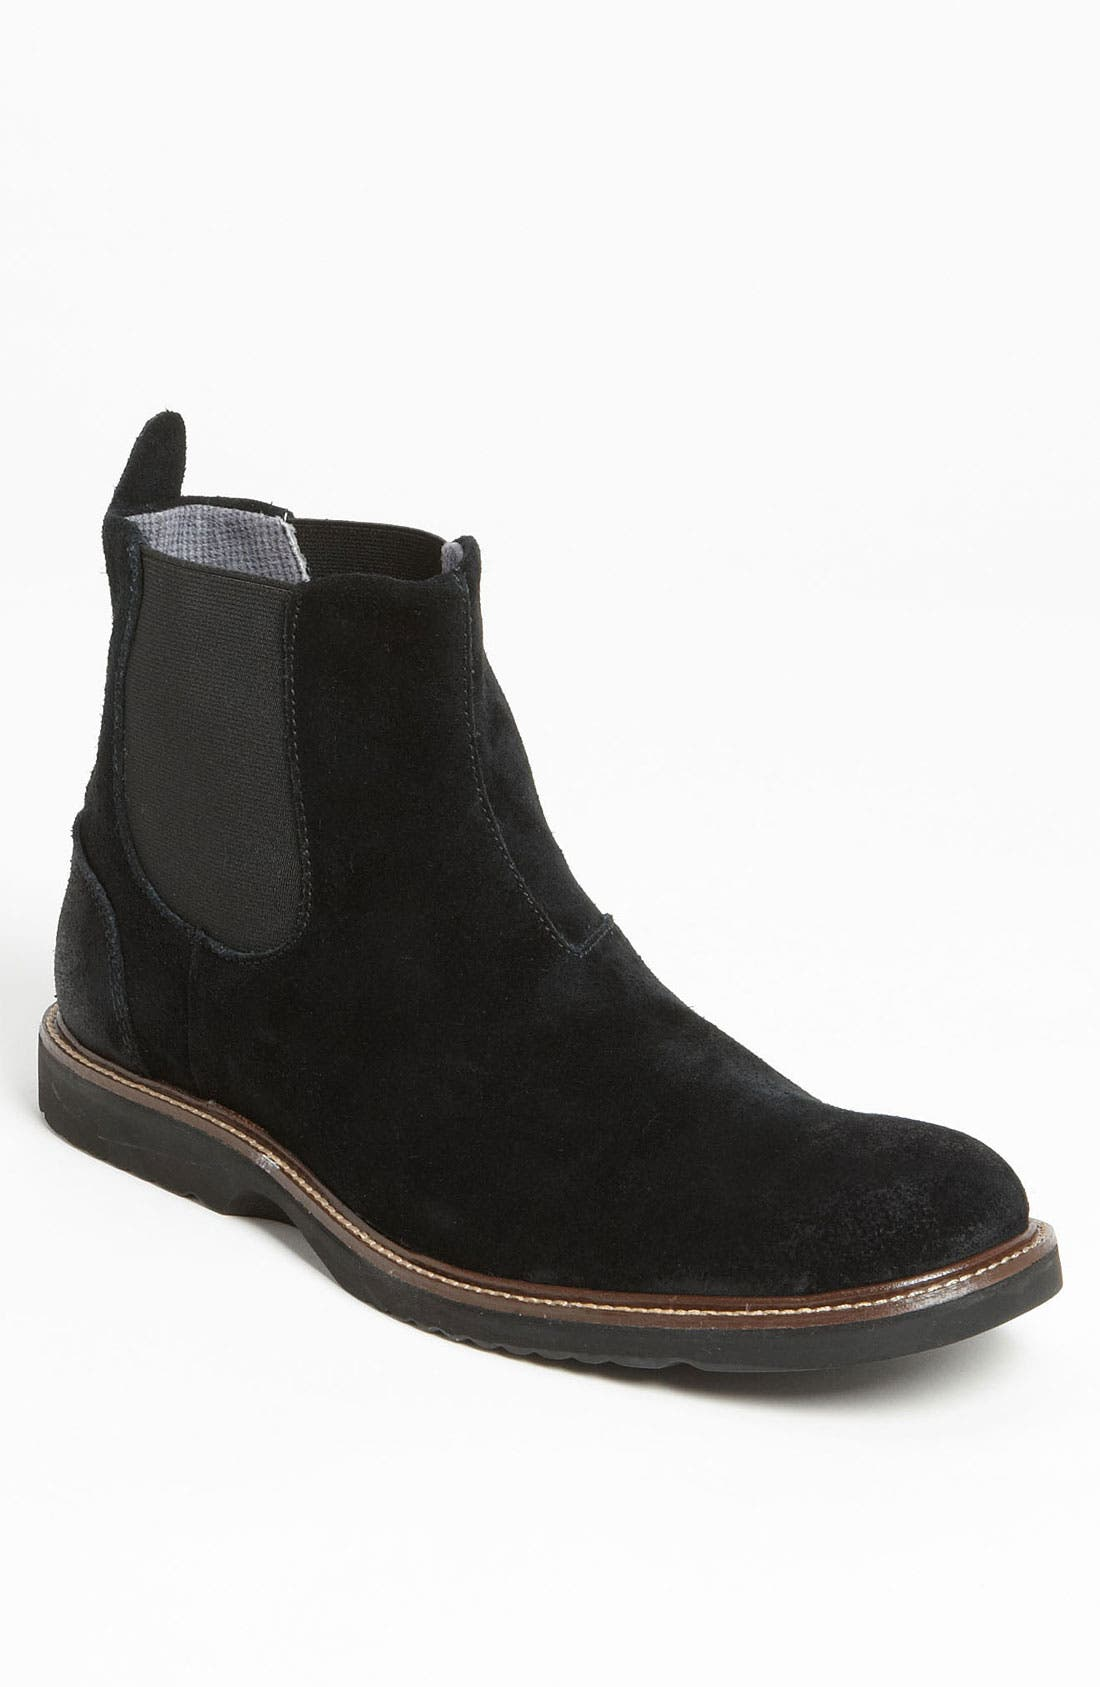 Alternate Image 1 Selected - Wolverine '1883 - Hartley' Chelsea Boot